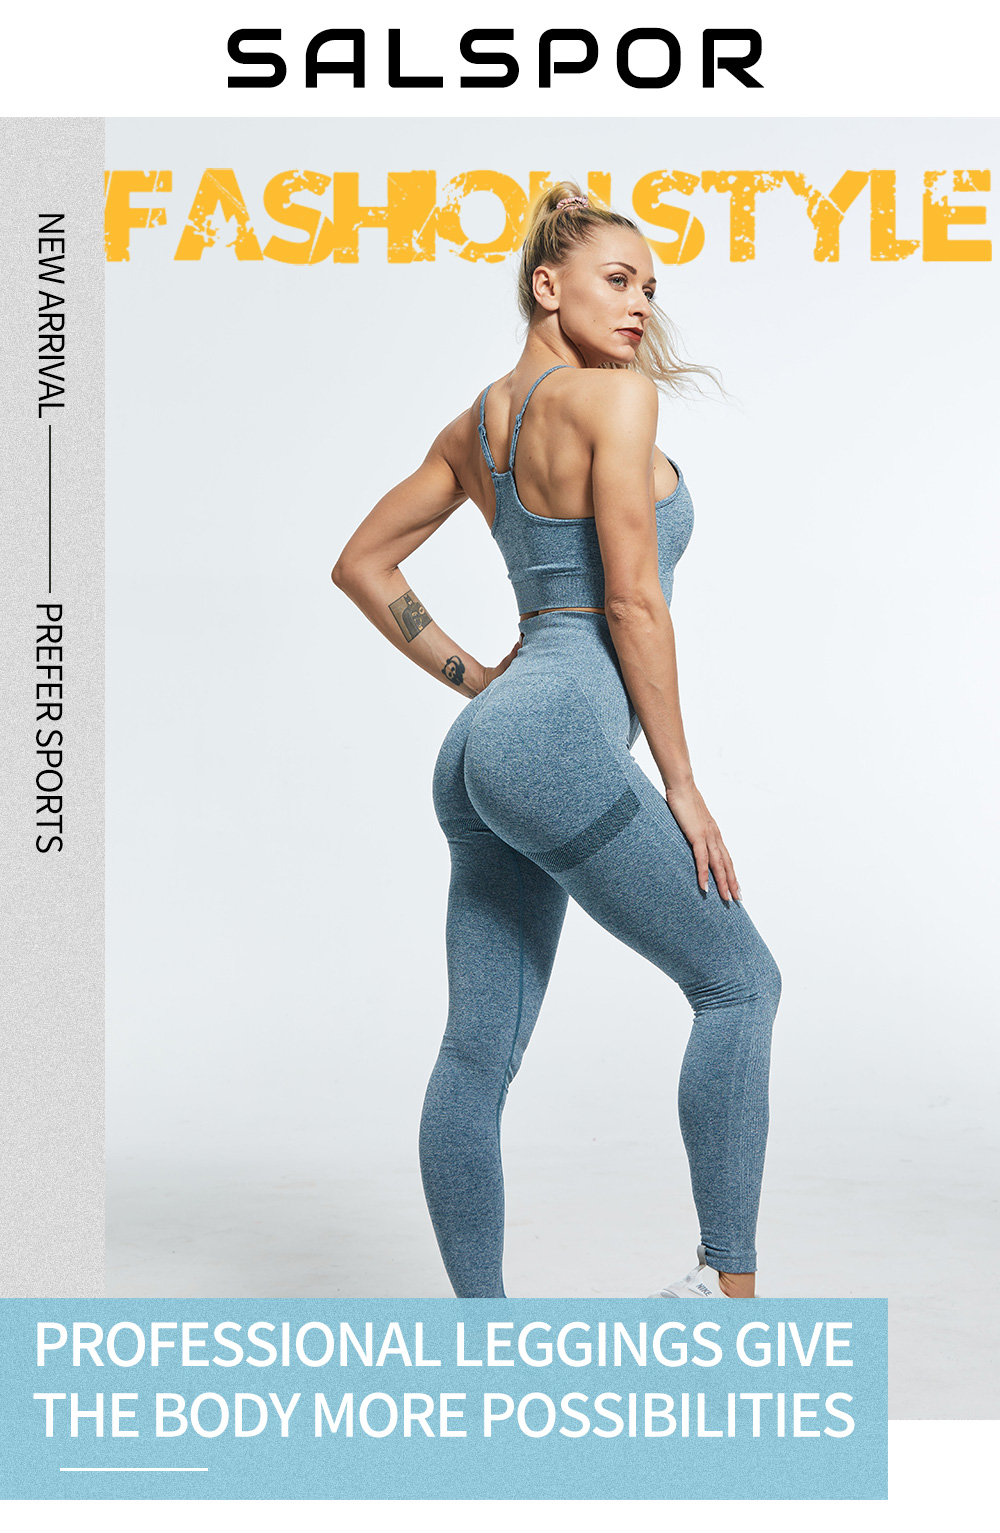 SALSPOR Women High Waist Leggings For Fitness Ladies Sexy Bubble Butt Gym Sports Workout Leggings Push Up Fitness Female Leggins